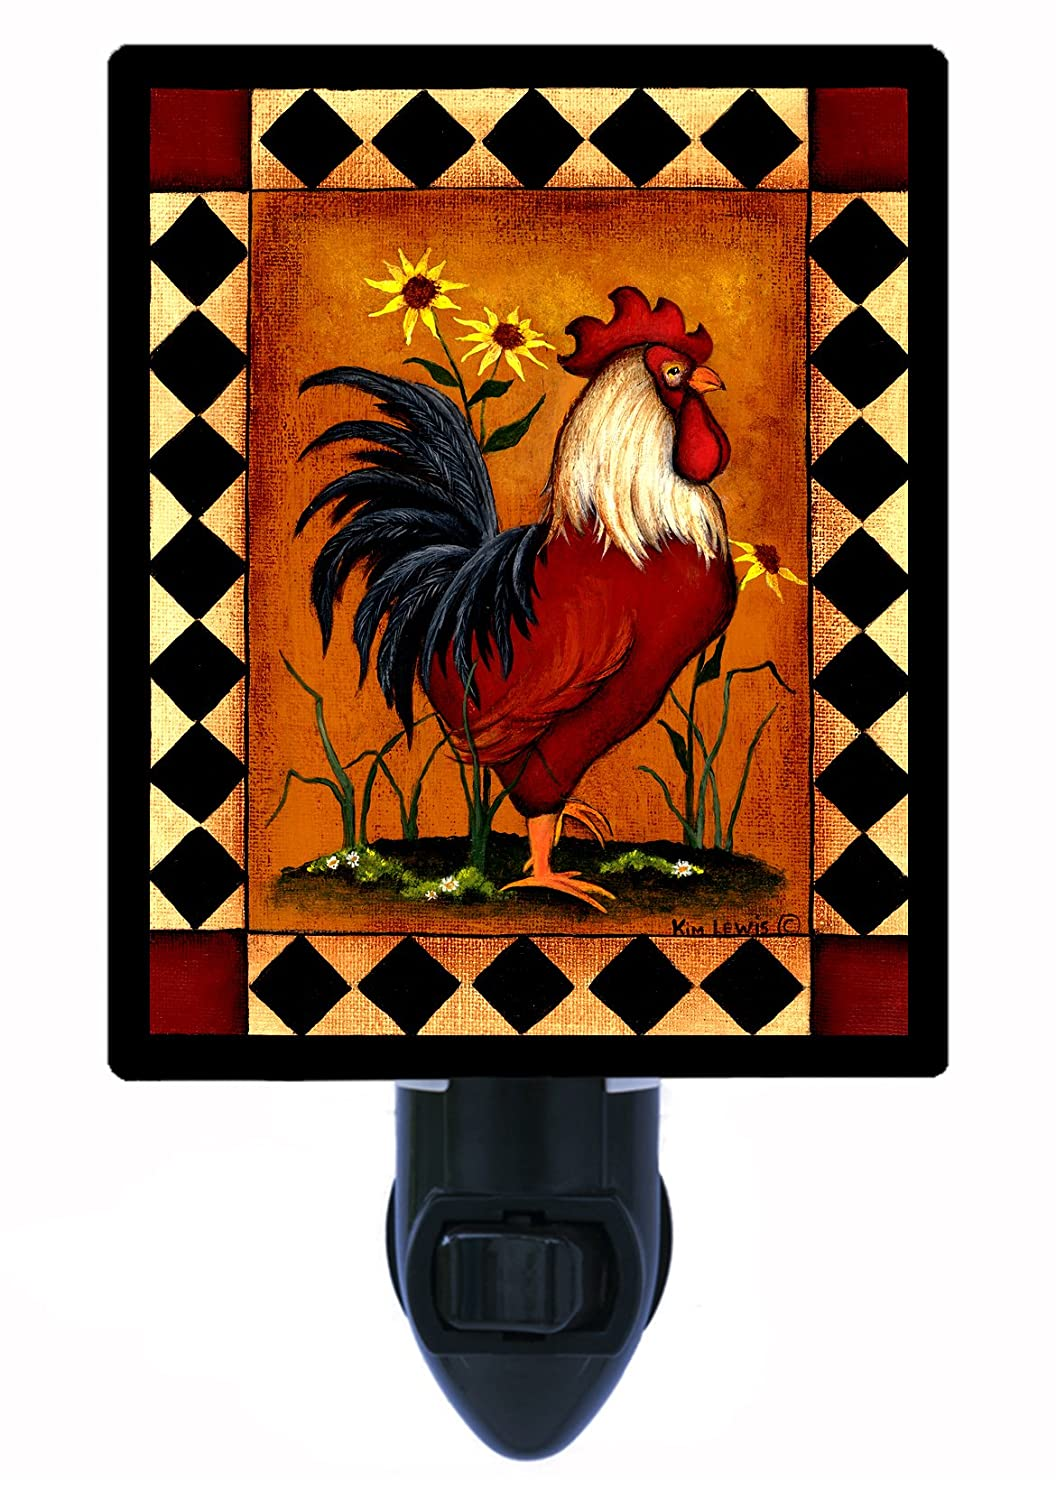 Country Kitchen Night Light - Red Rooster